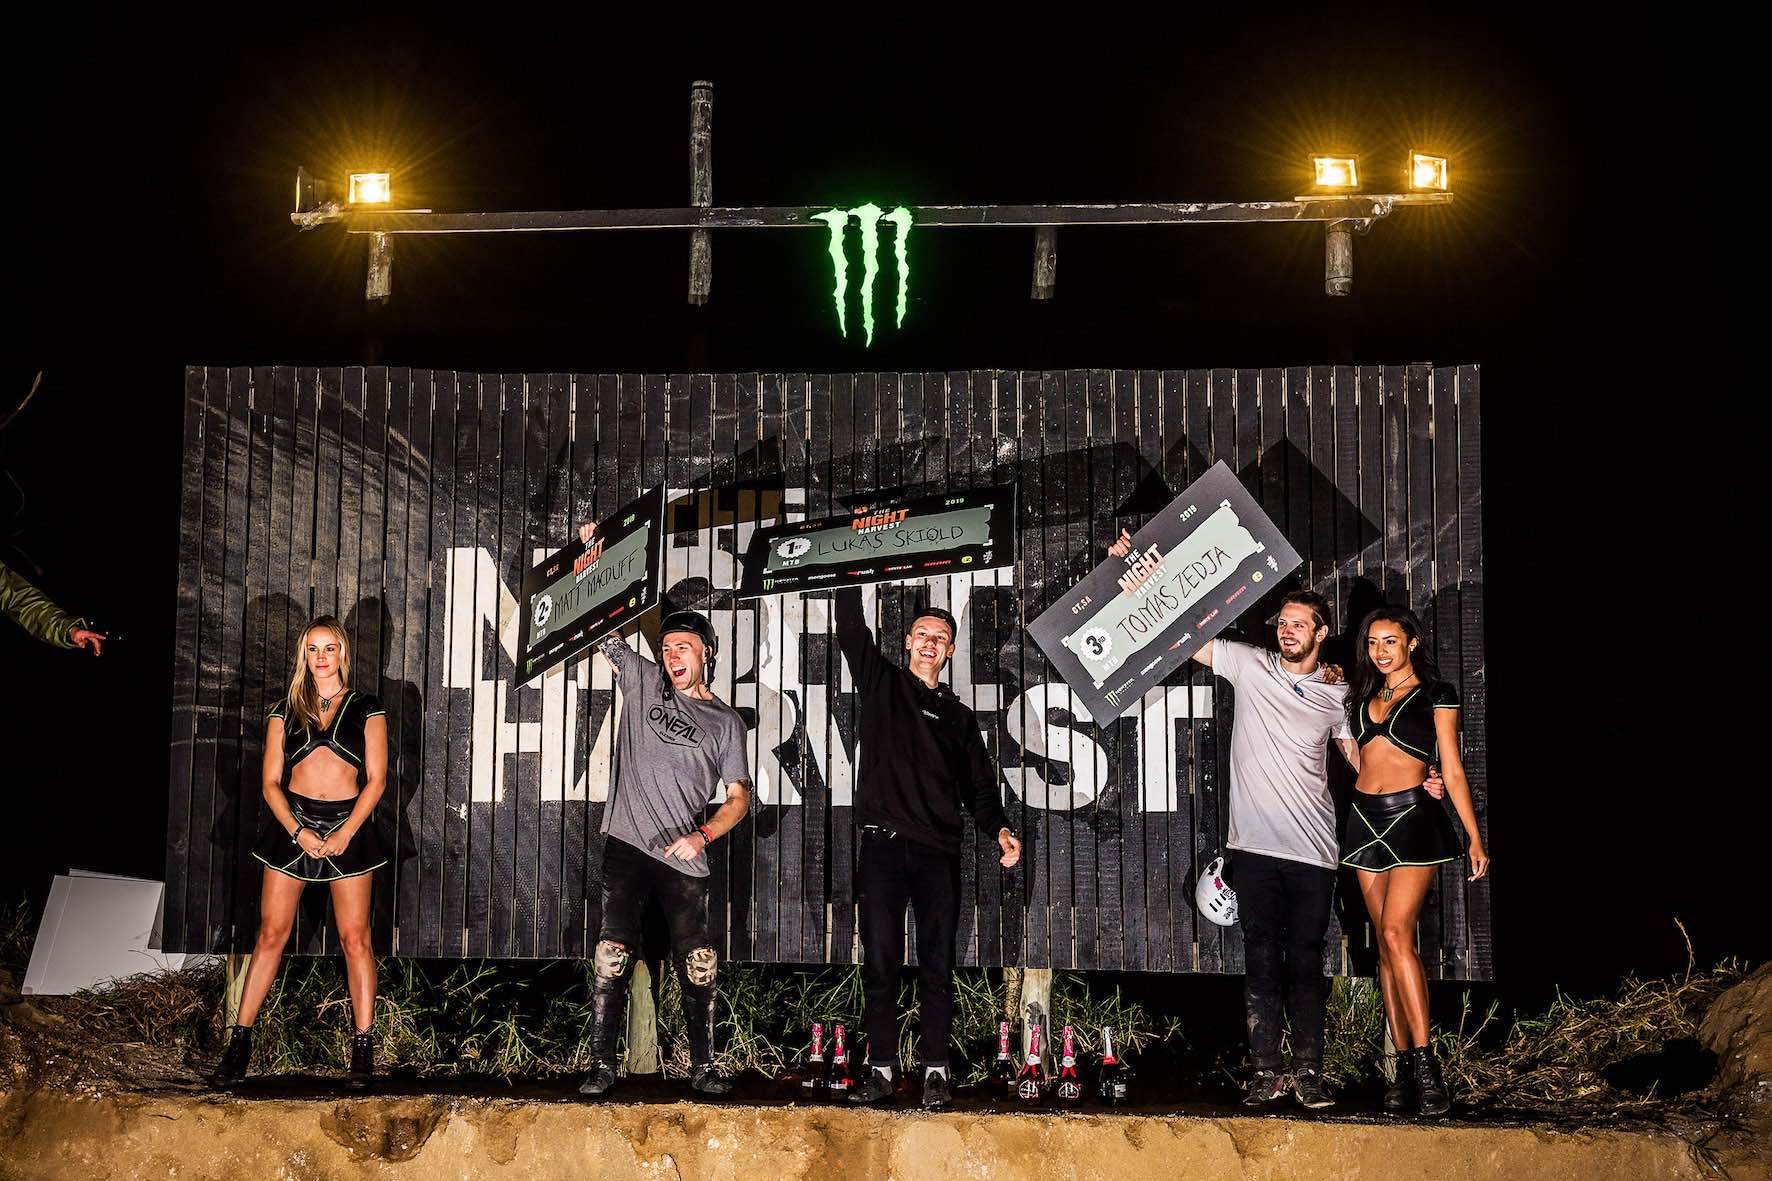 The Night Harvest 2019 MTB podium